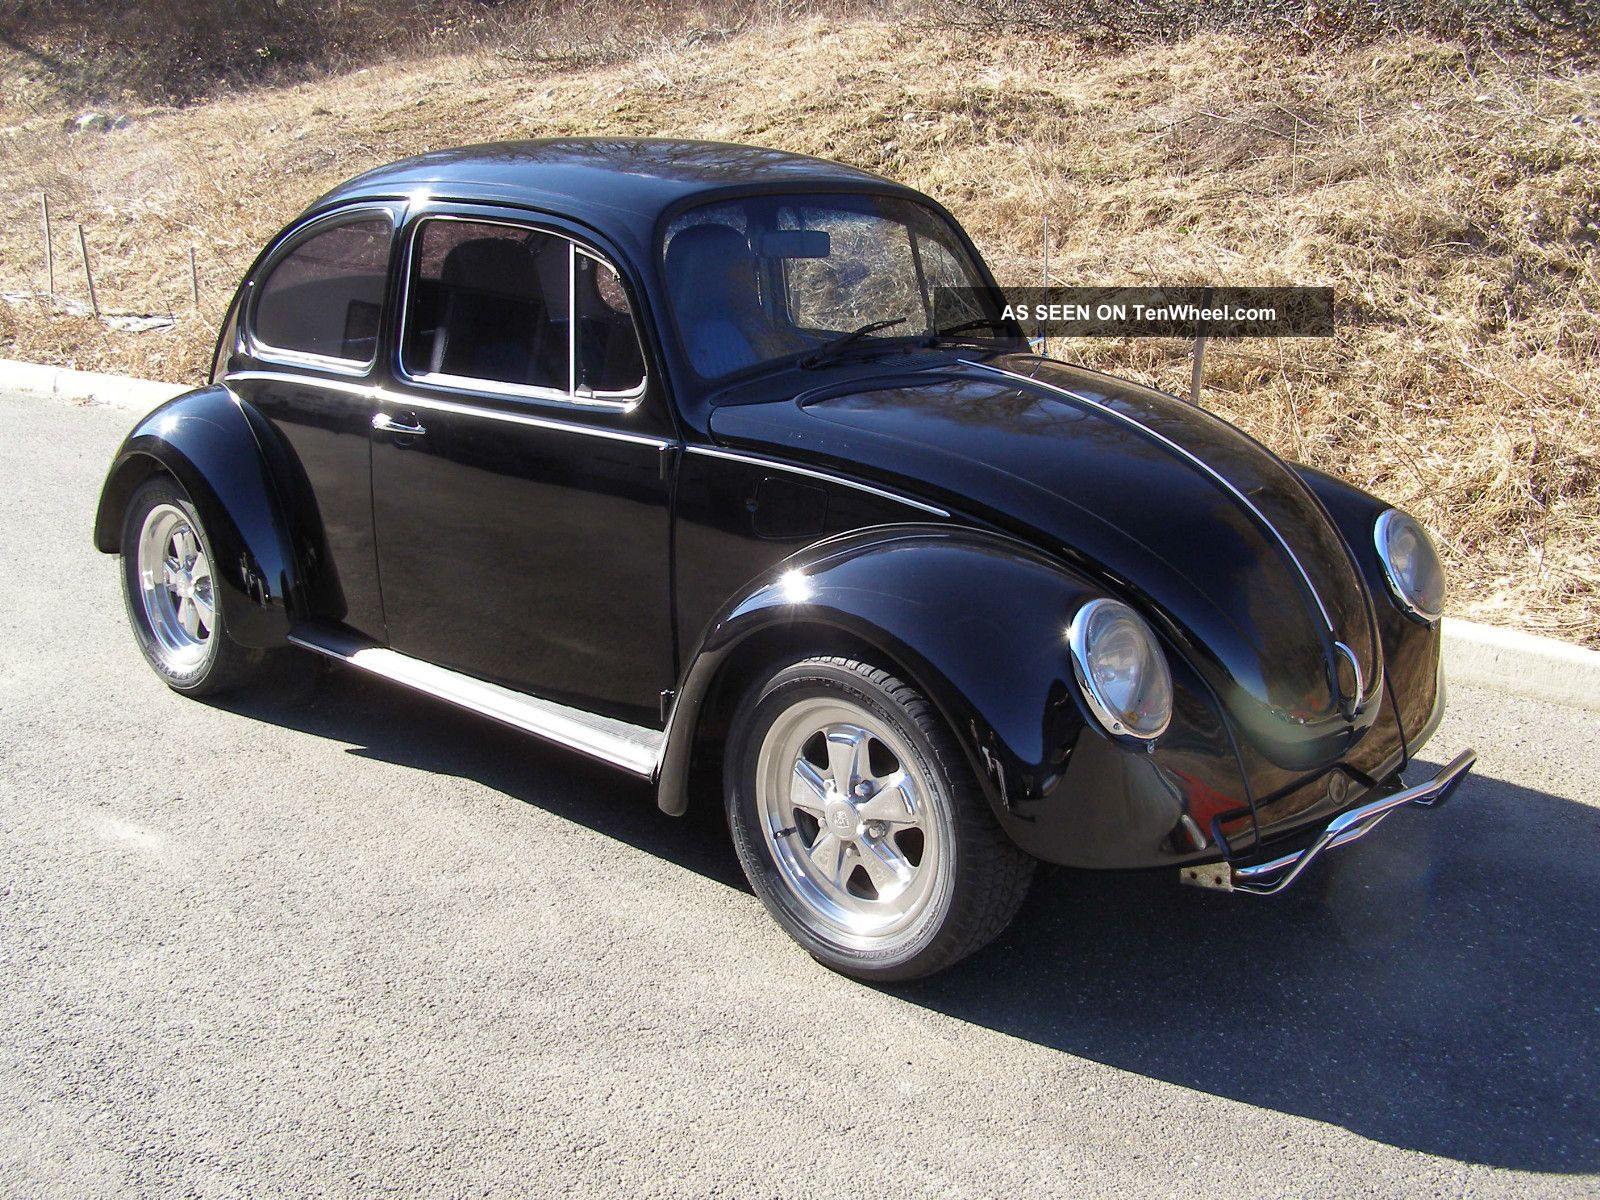 1974 Custom Classic Beetle - Superbly Done - Look Beetle - Classic photo